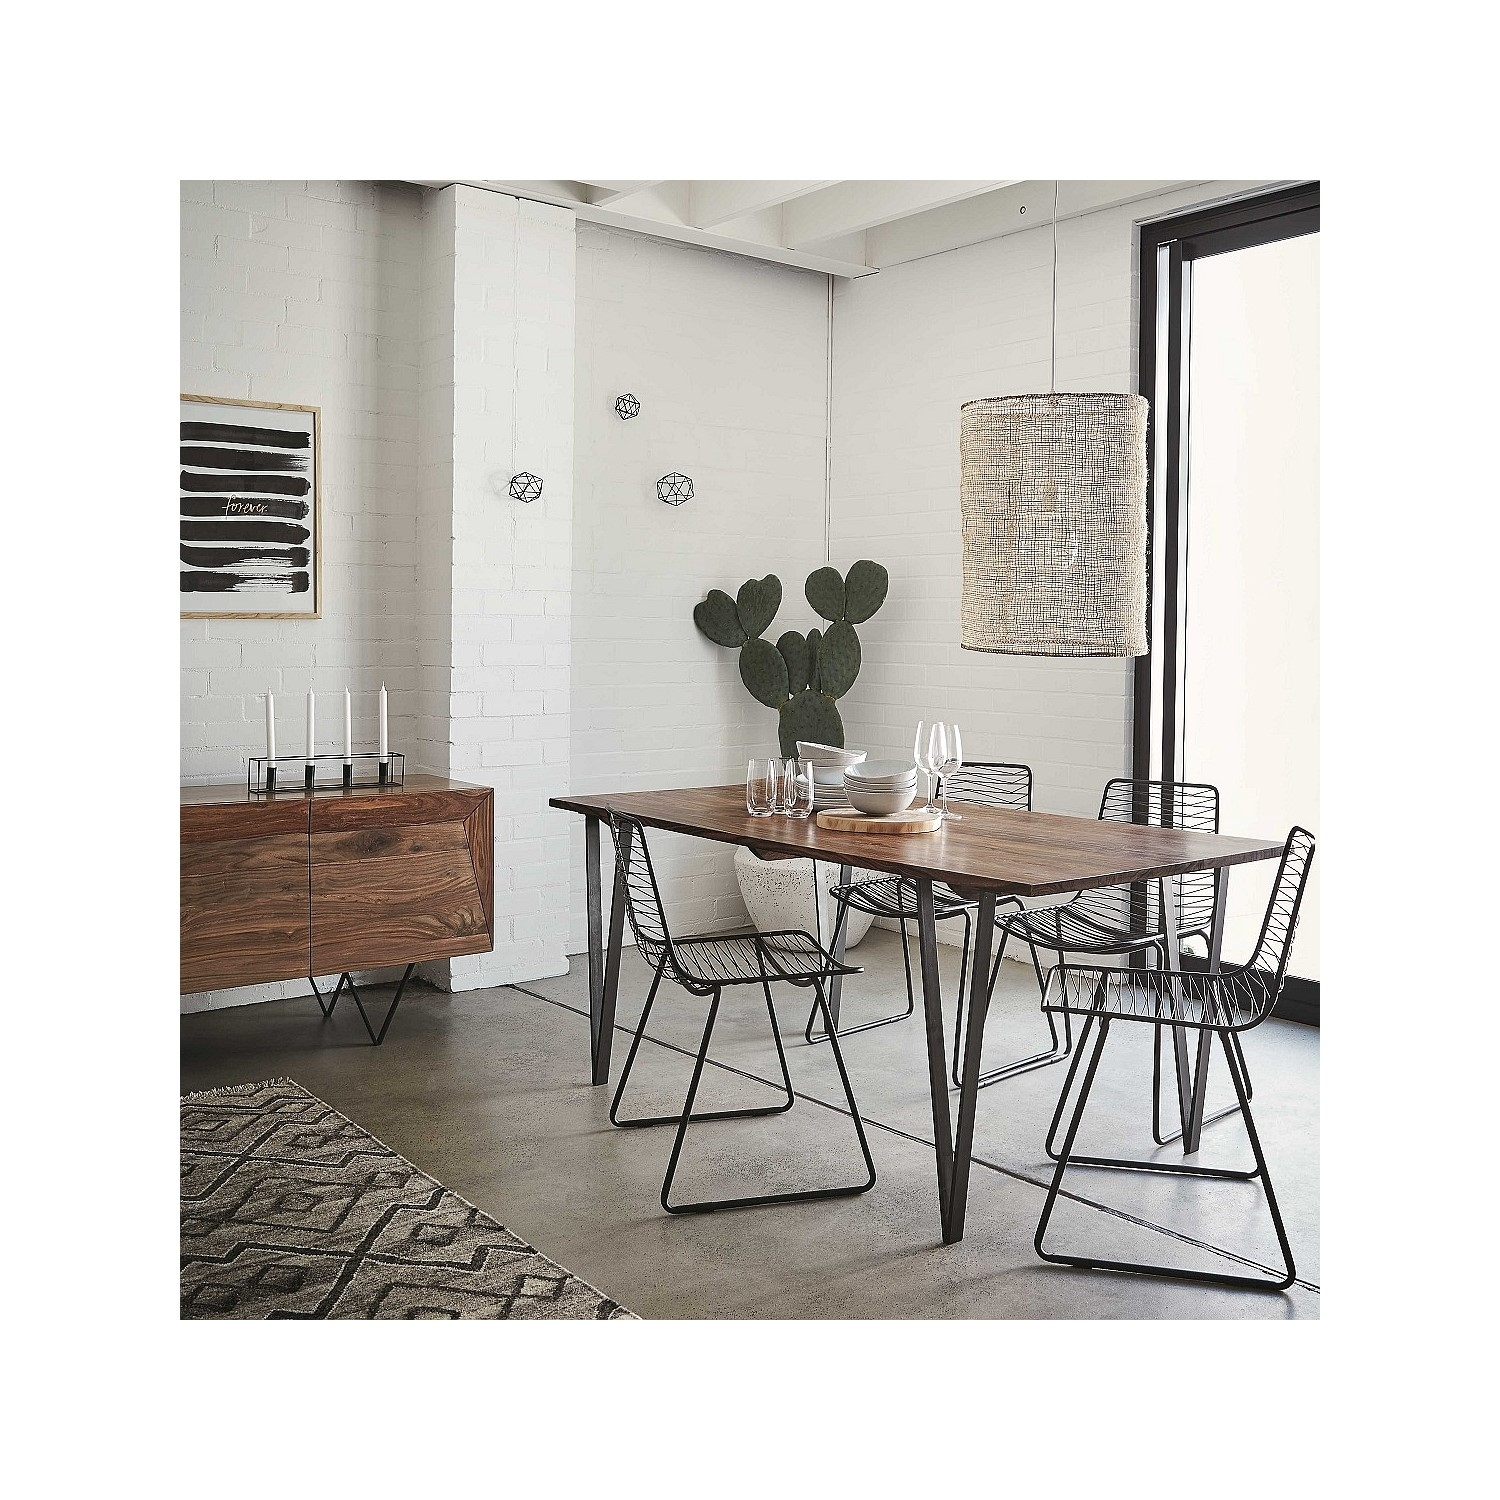 Dining Tables – Wyatt Dining Table 175X90Cm Intended For Most Up To Date Wyatt Dining Tables (View 3 of 20)